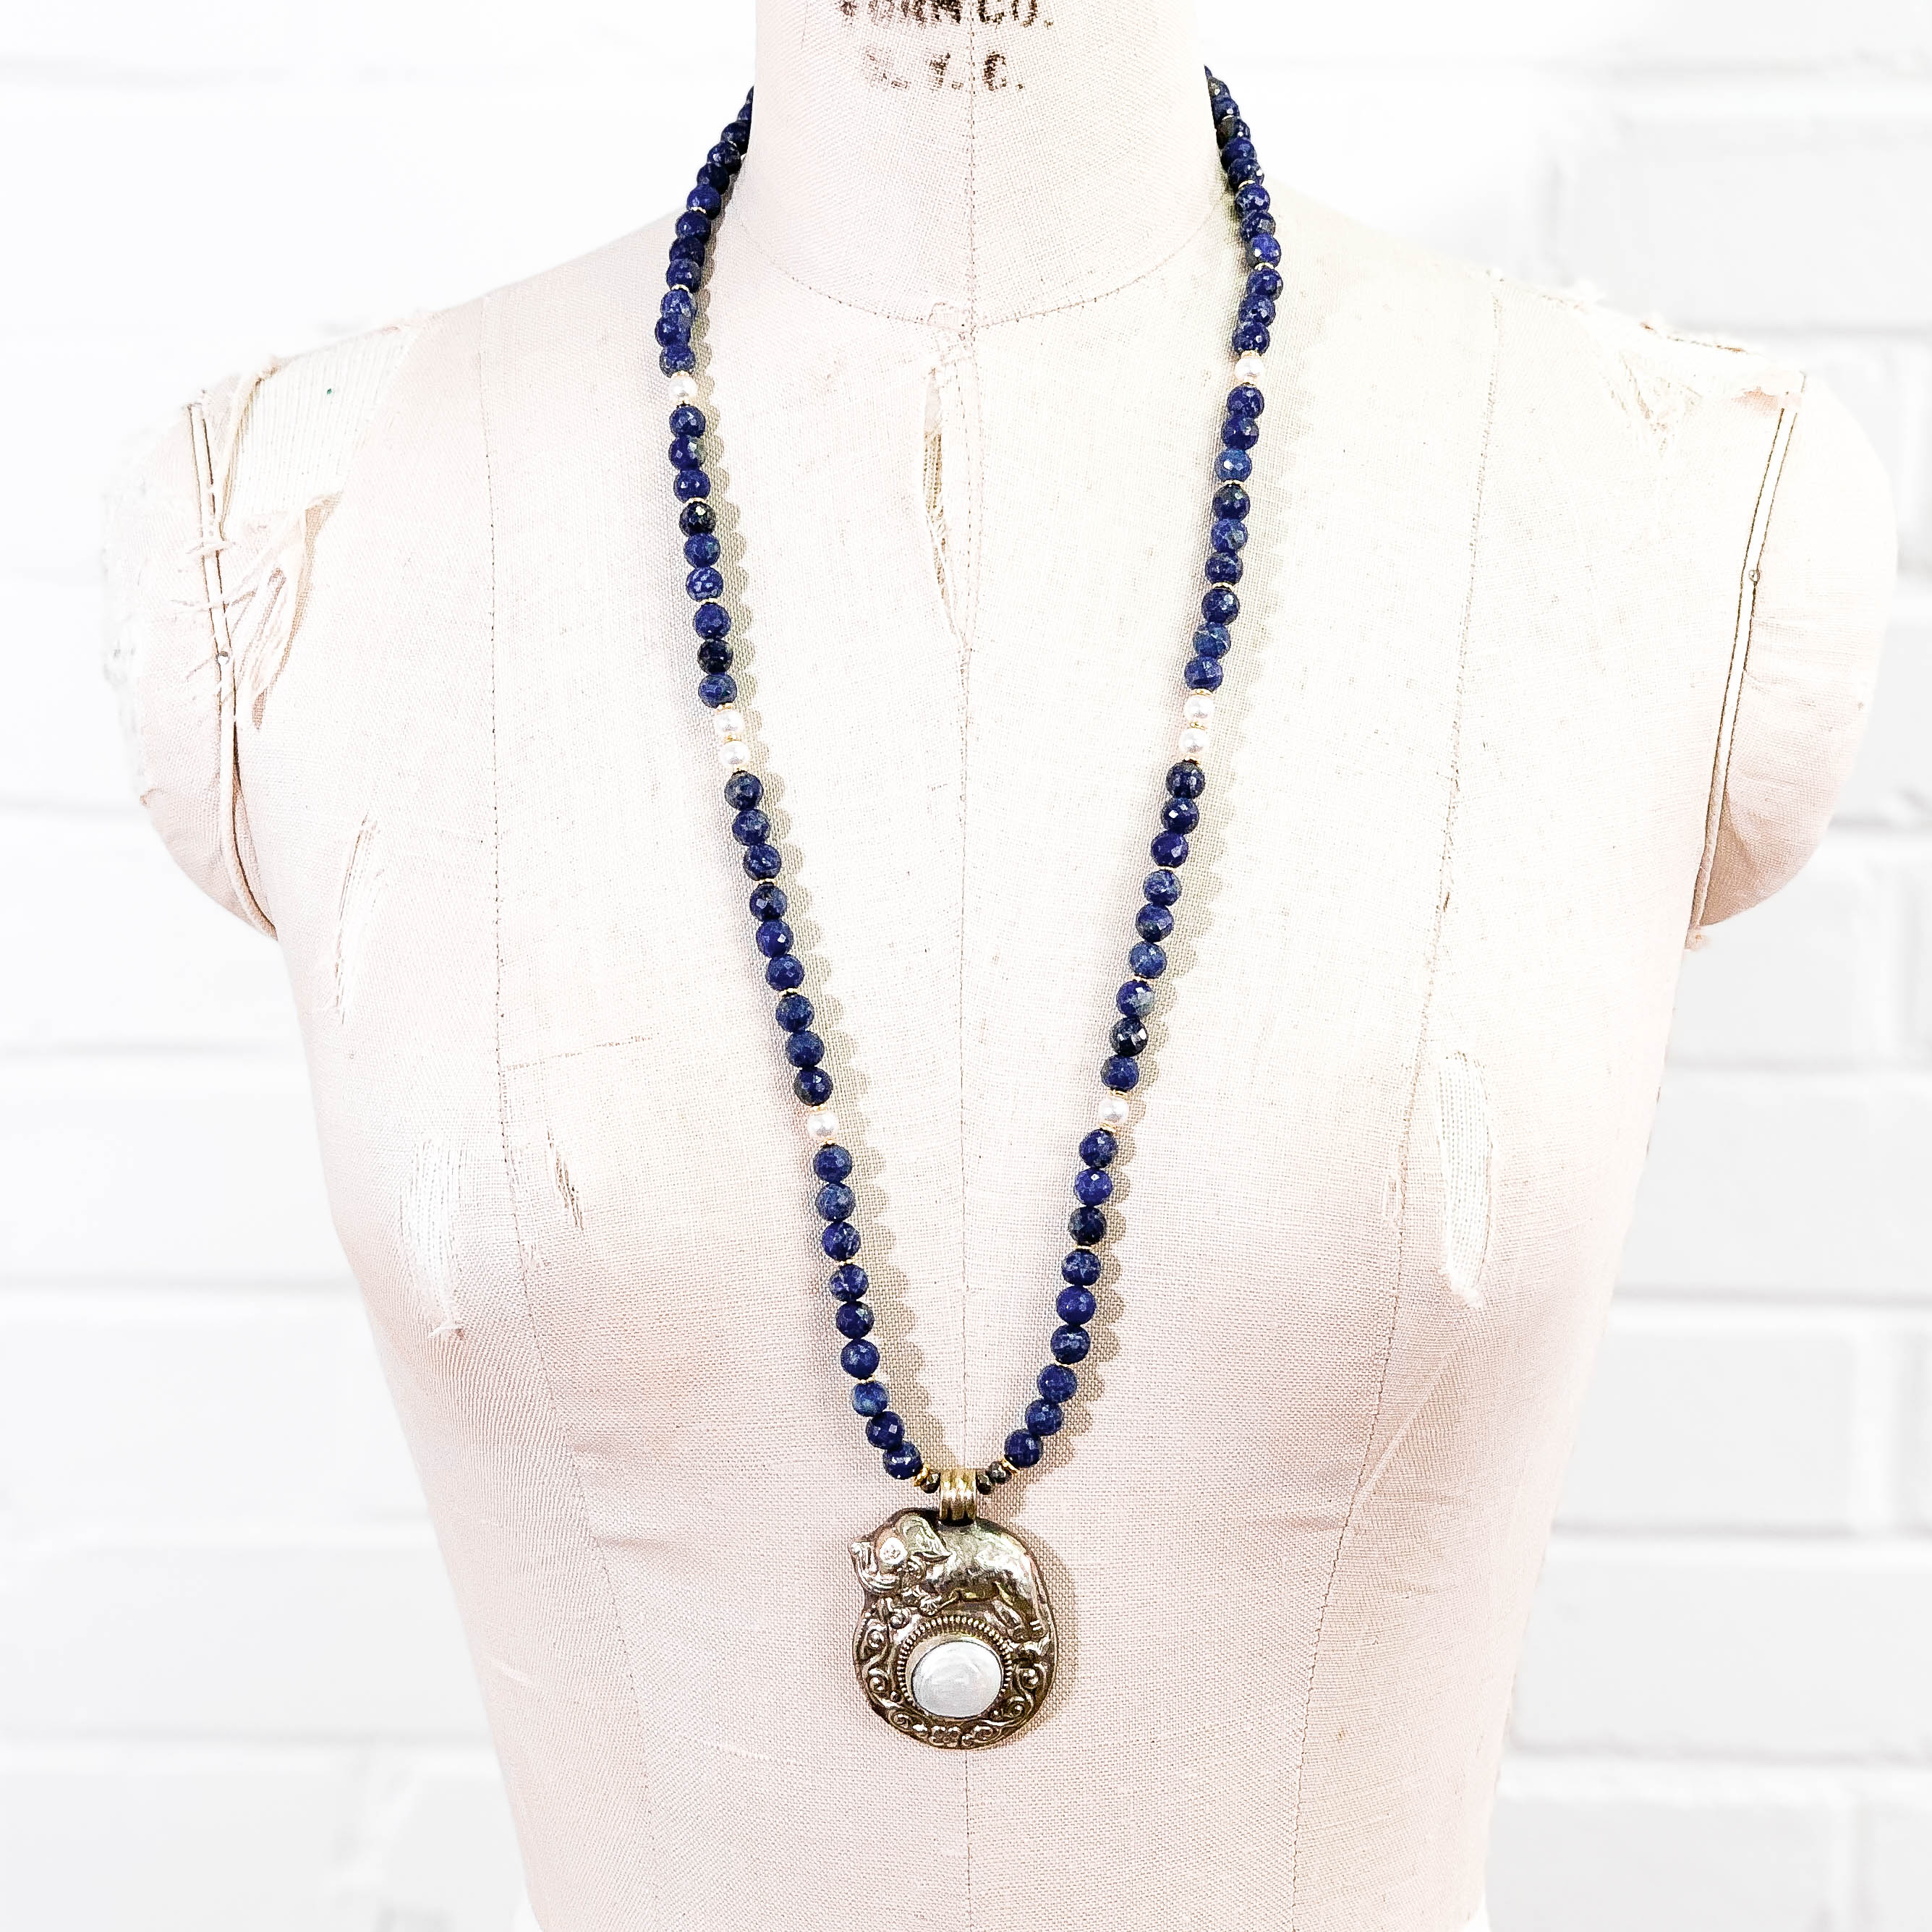 Nepali Mother of Pearl Elephant Pendant on Lapis Lazuli & Swarovski Glass Pearl Necklace